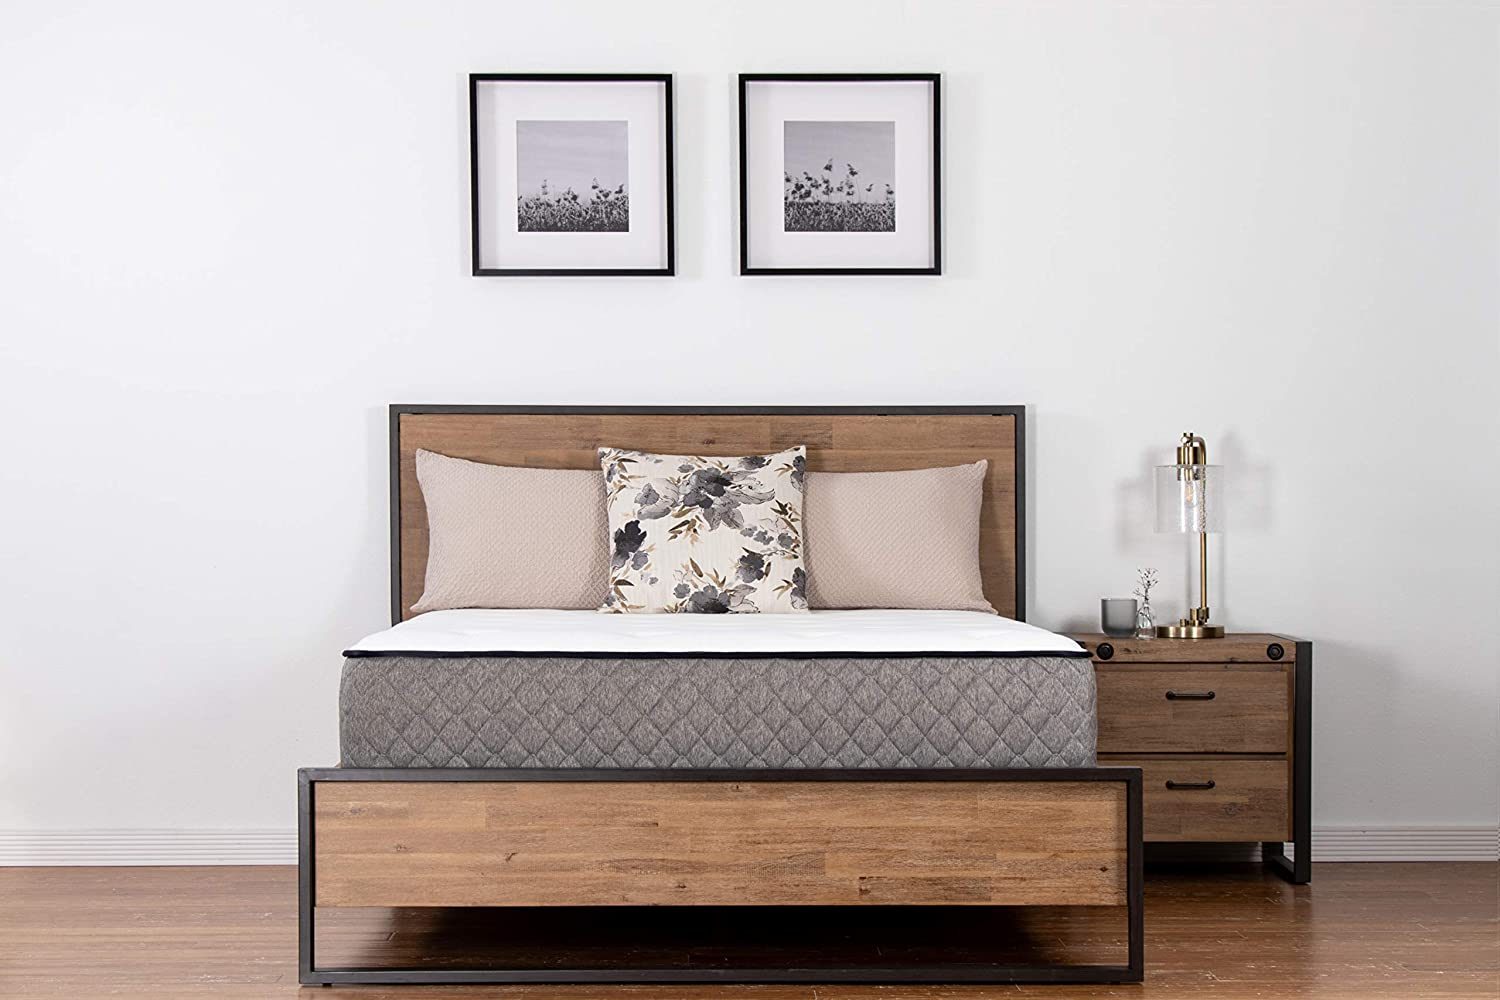 Health 1st Indulgent II Essential Hybrid, Memory Foam, Pocketed Coils, 11 Profile, Bed in a Box, Luxury Plush Feel, Queen